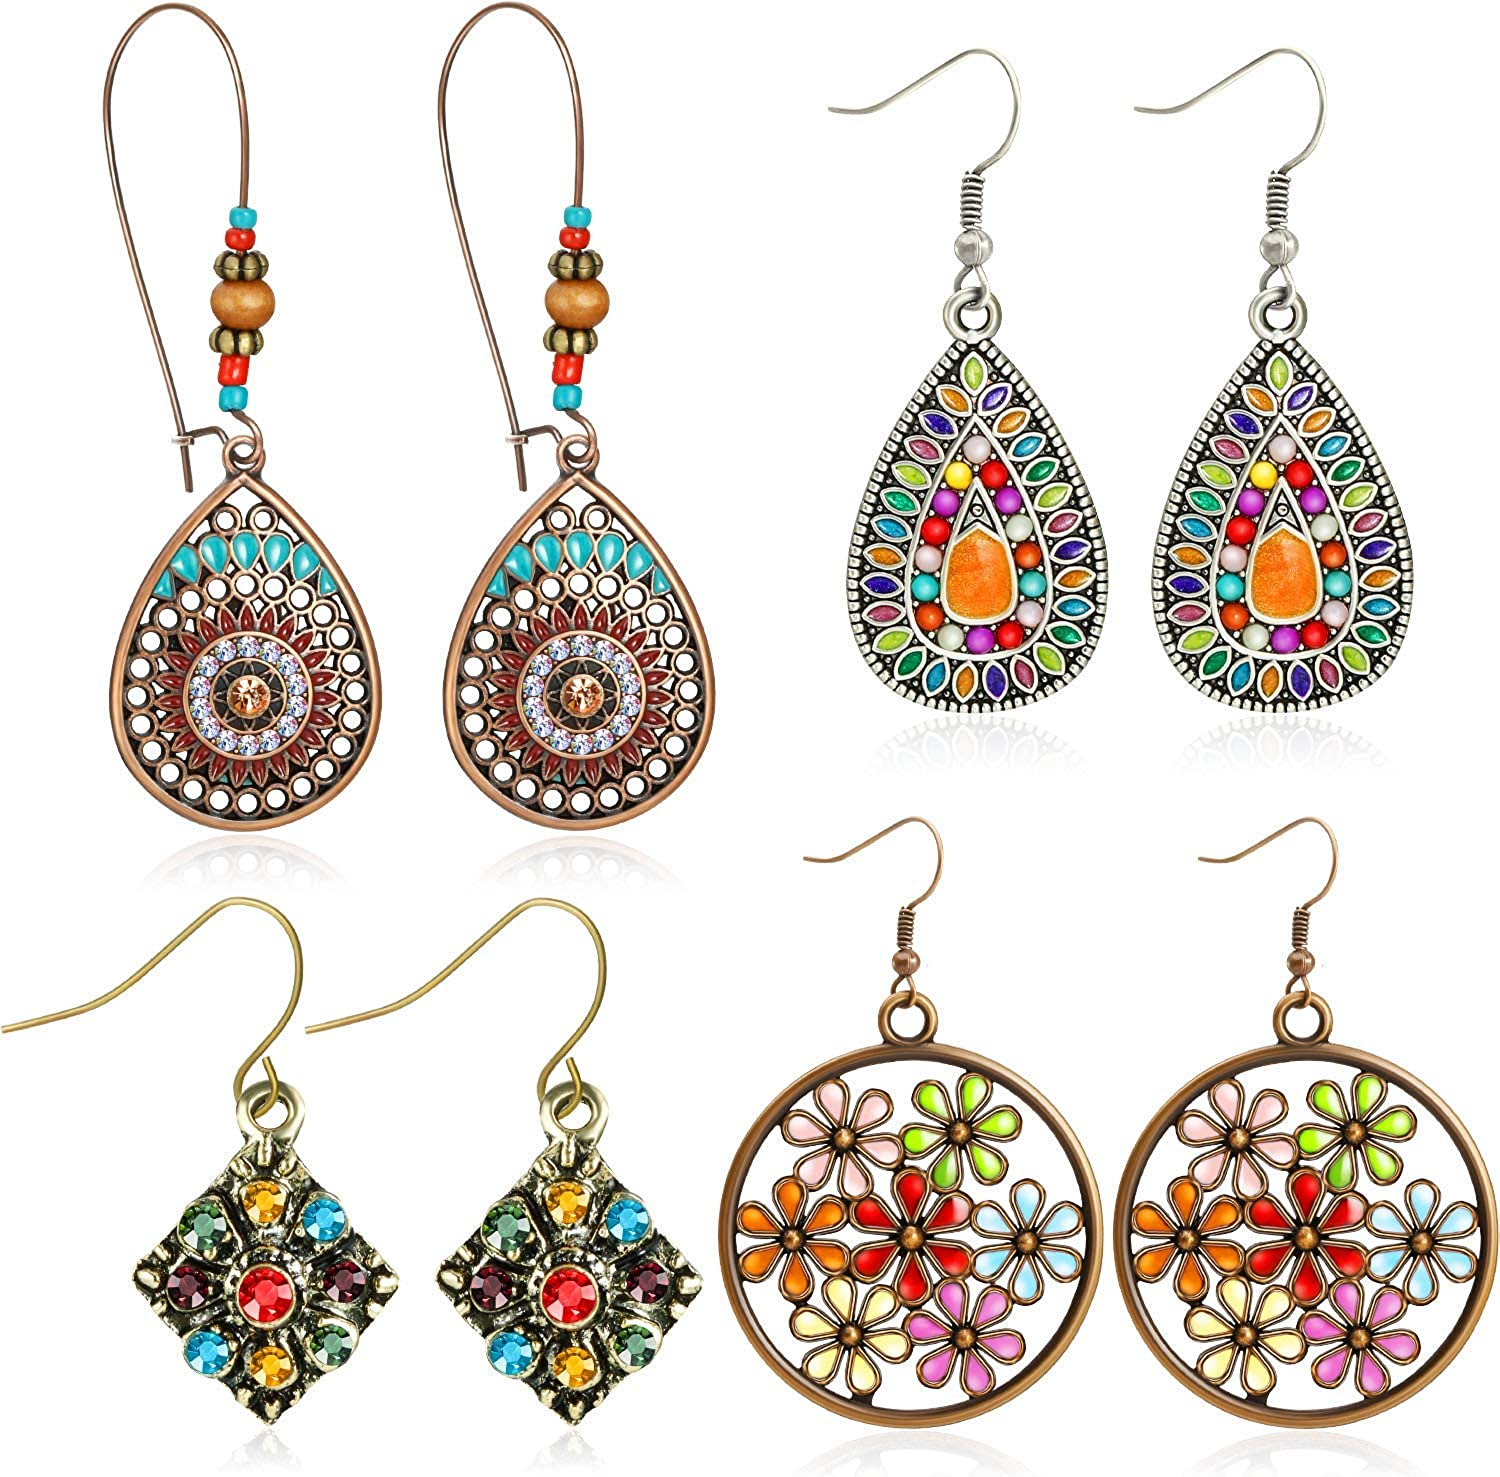 4 Pairs Bohemian Vintage Dangle Earrings Retro Rhinestone Earrings Boho Dangle Drop Earrings for Women Girls (Style A)